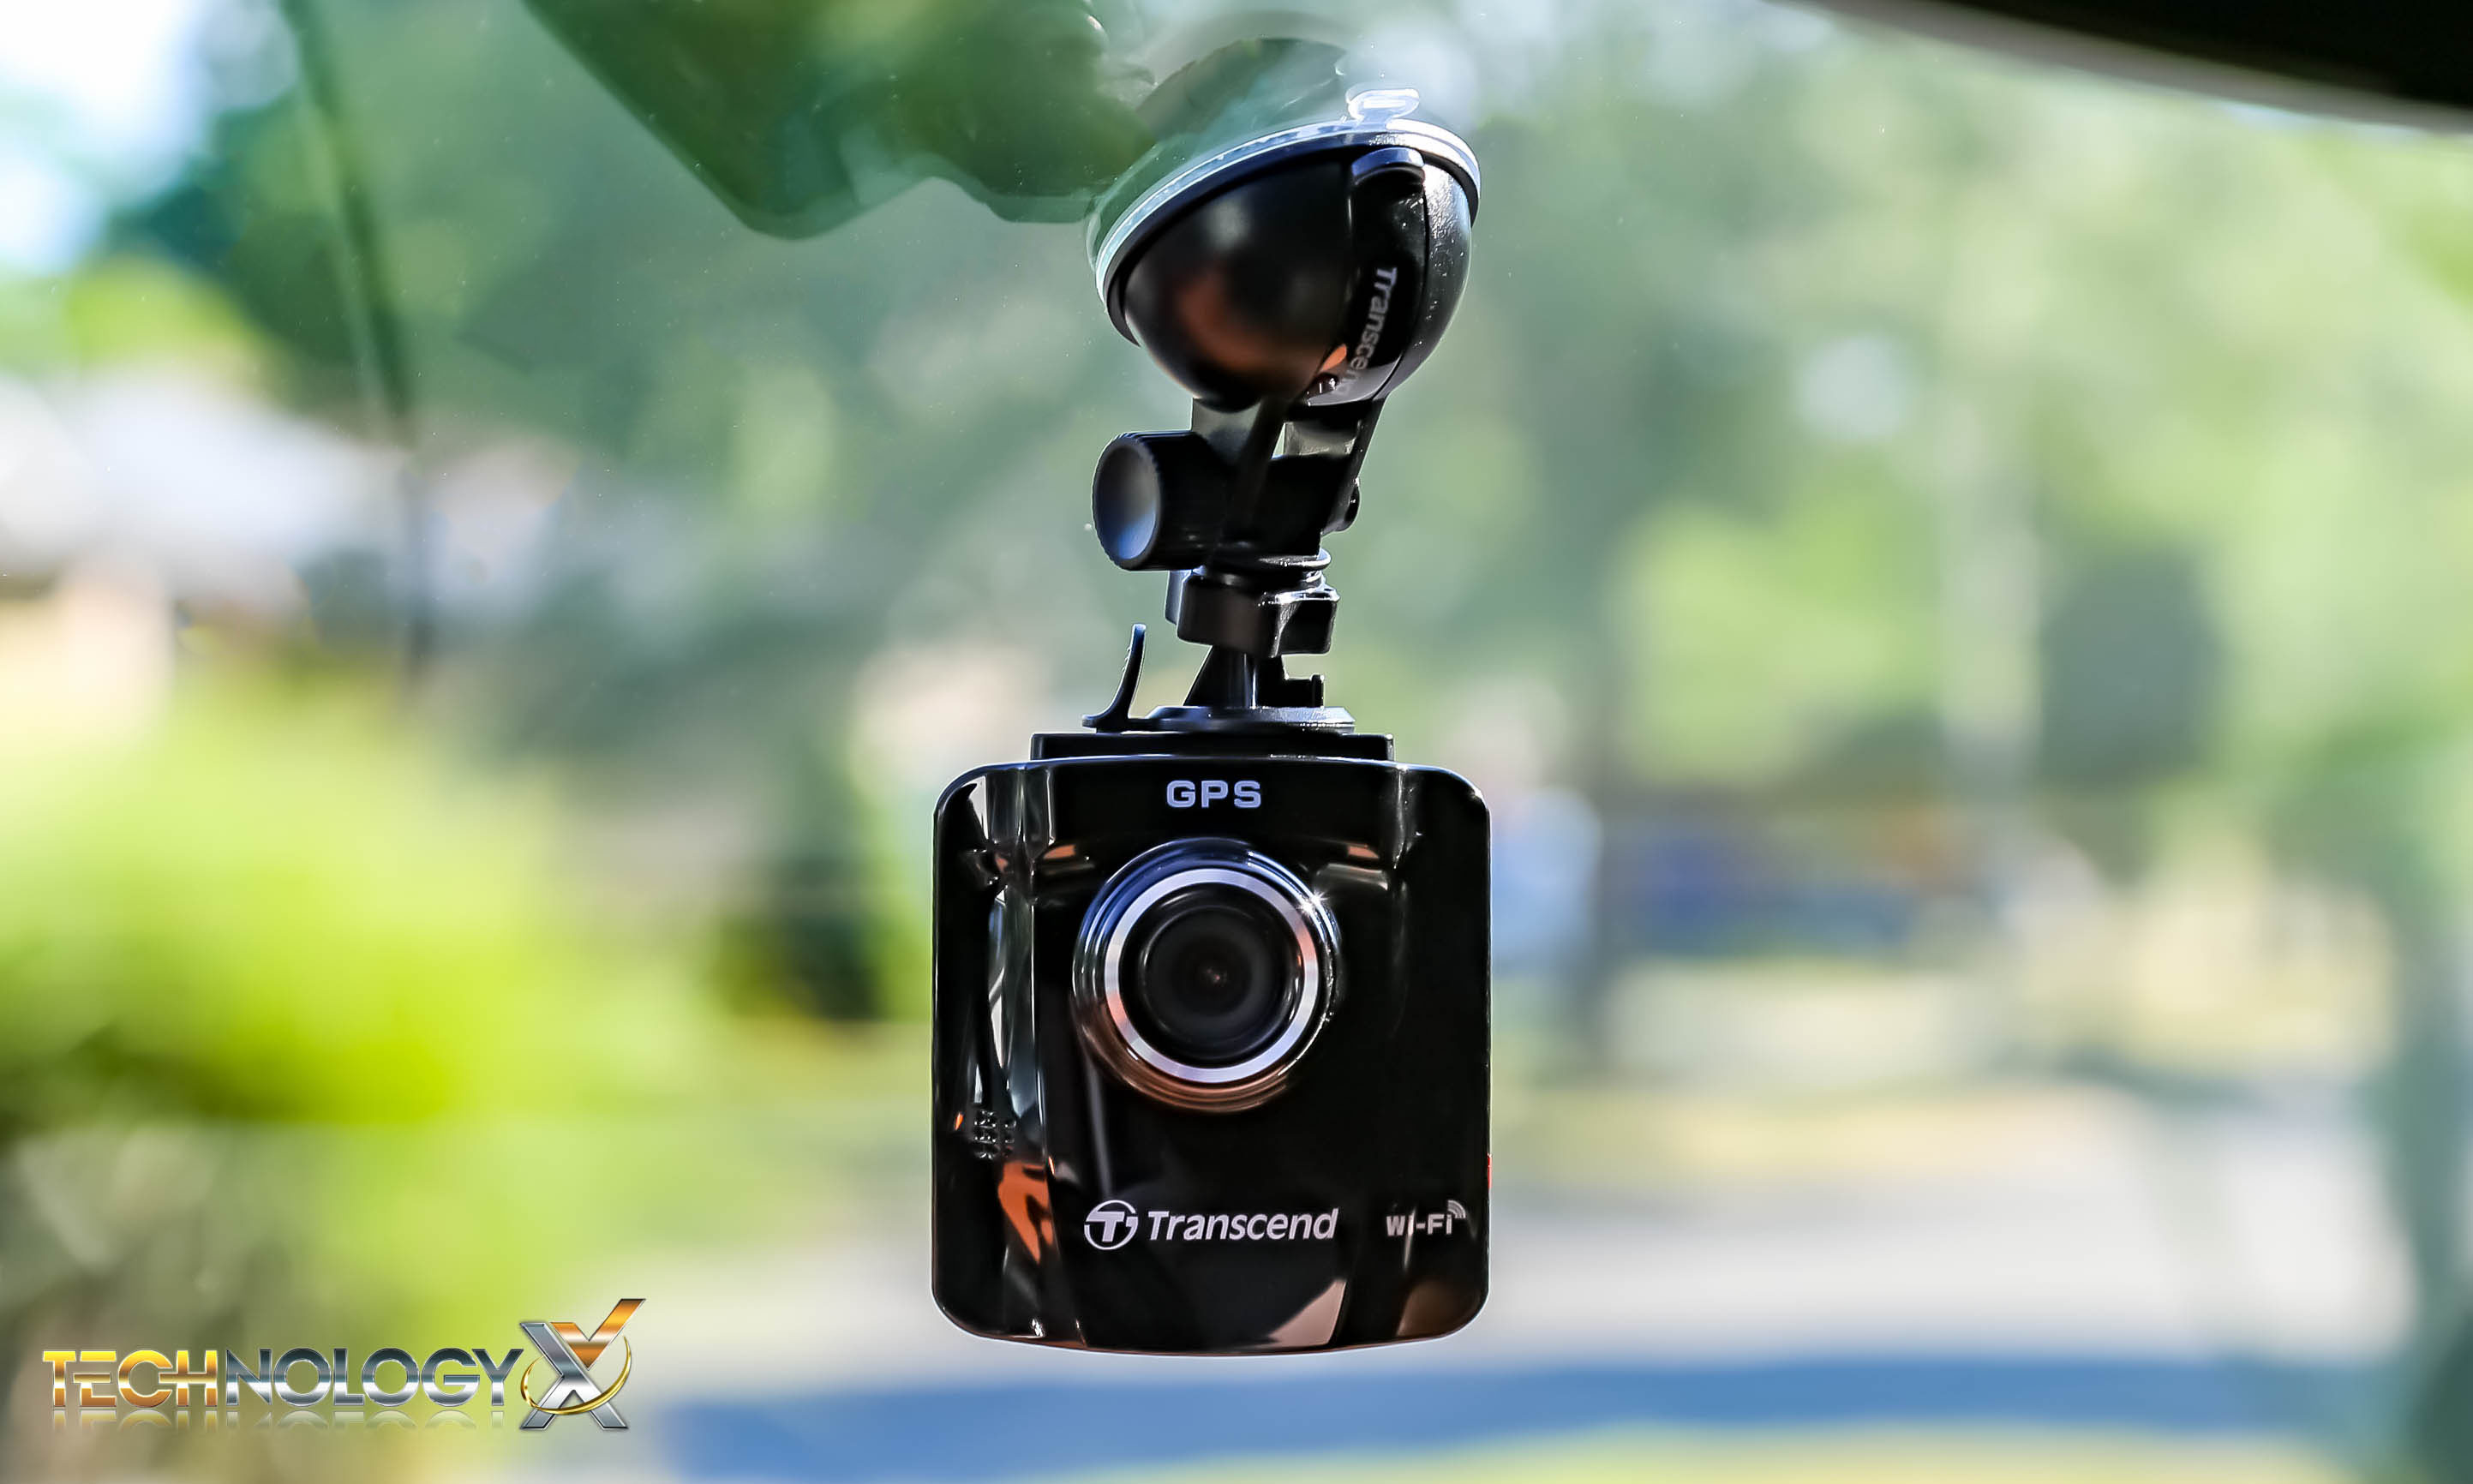 Transcend DrivePro 220 Car Video Recorder Review | Technology X